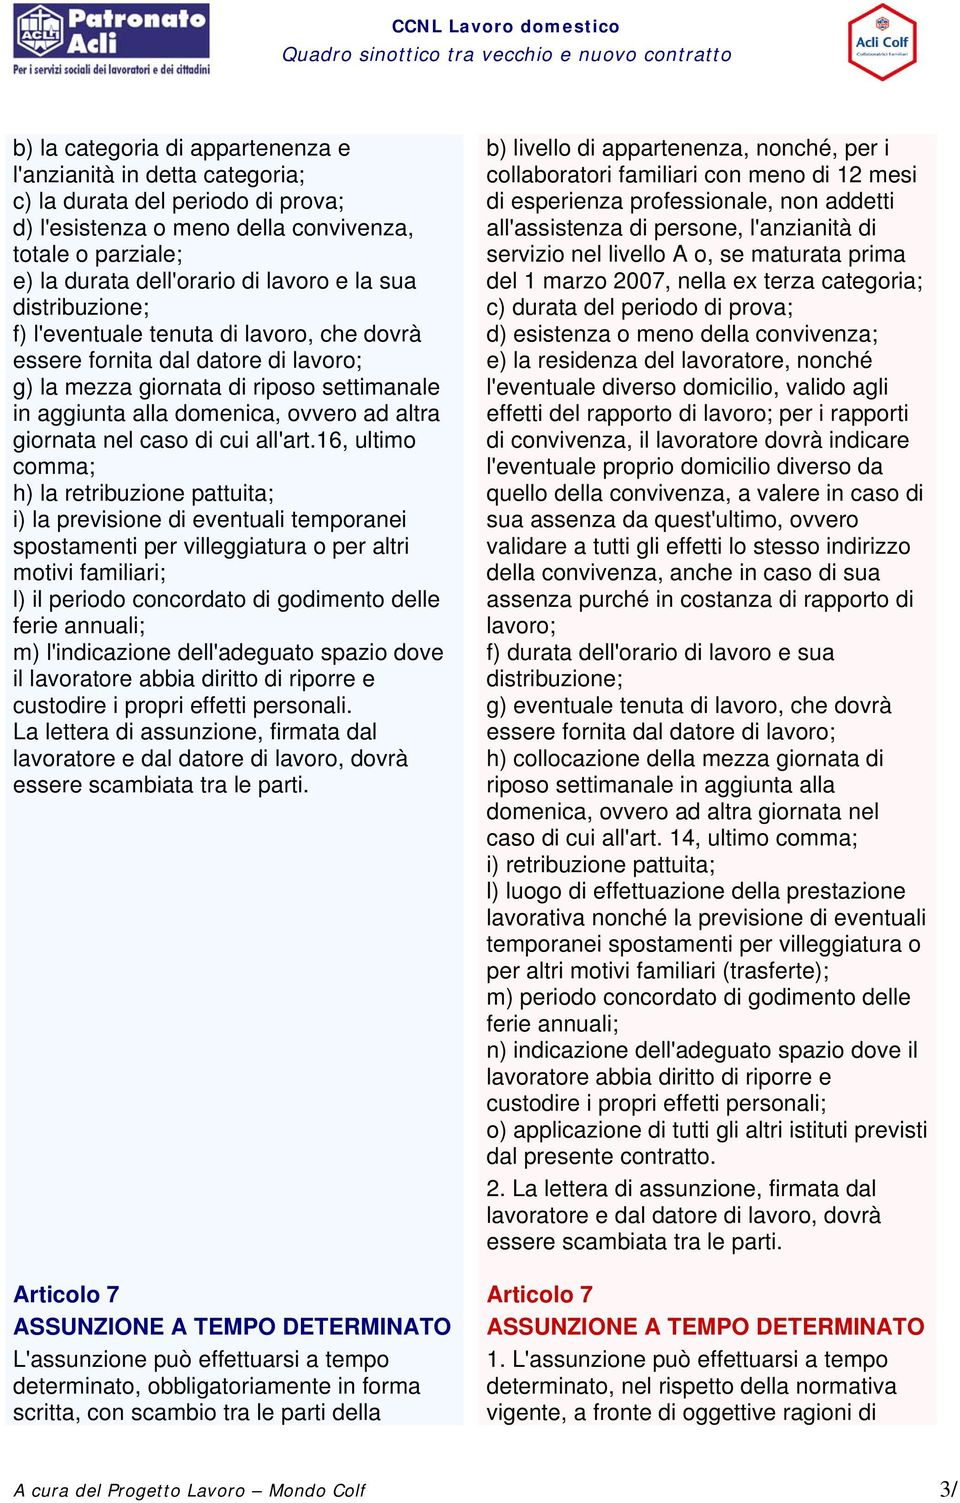 caso di cui all'art.